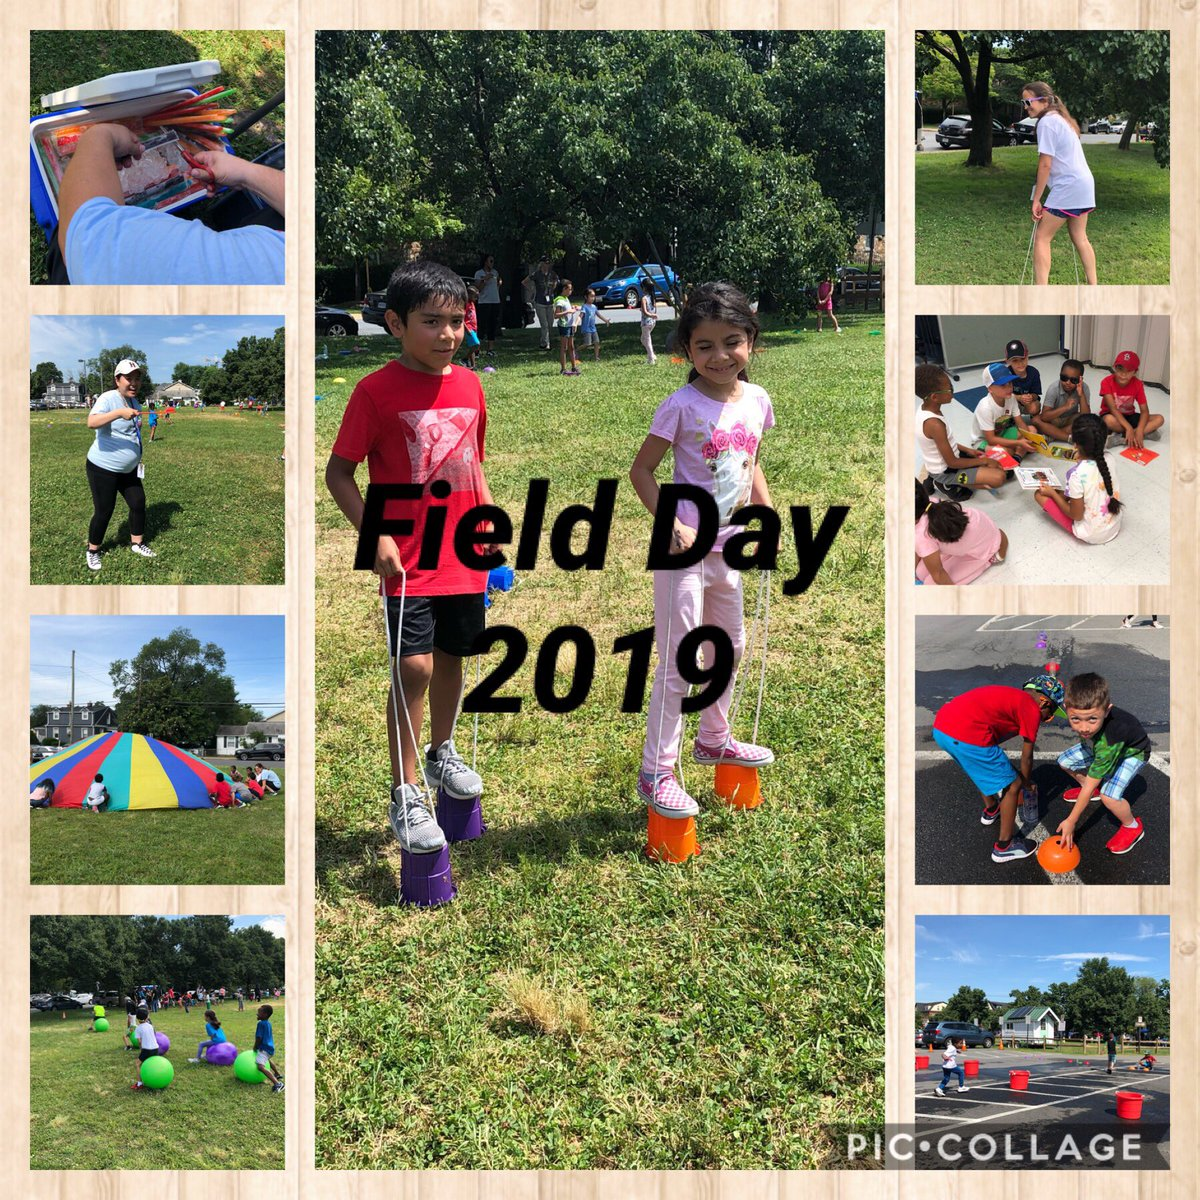 Field Day 2019! <a target='_blank' href='http://search.twitter.com/search?q=Apsisawesome'><a target='_blank' href='https://twitter.com/hashtag/Apsisawesome?src=hash'>#Apsisawesome</a></a>  <a target='_blank' href='http://search.twitter.com/search?q=HfbTweets'><a target='_blank' href='https://twitter.com/hashtag/HfbTweets?src=hash'>#HfbTweets</a></a> <a target='_blank' href='https://t.co/Tef0EFHLRz'>https://t.co/Tef0EFHLRz</a>